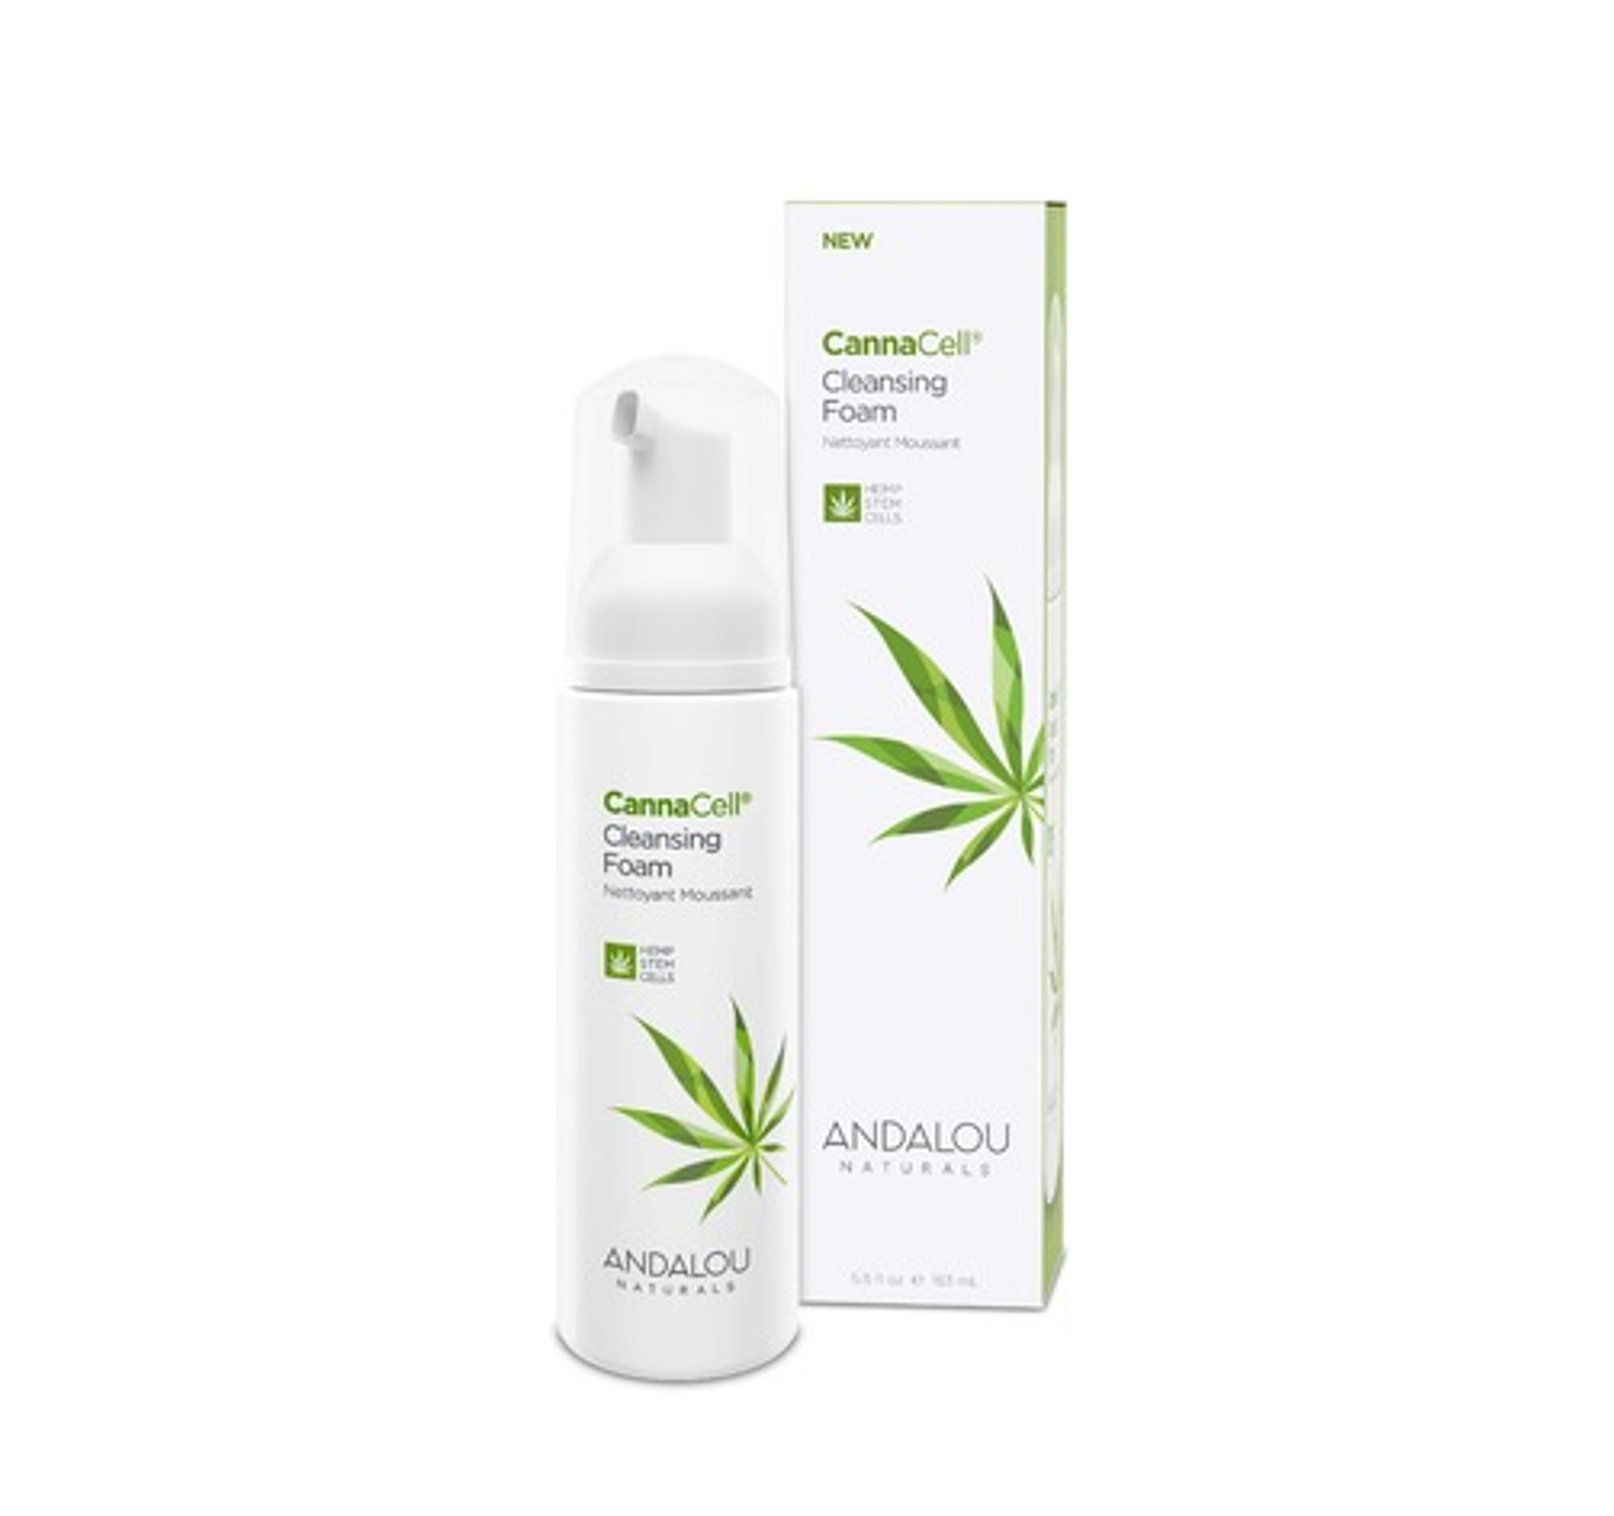 Andalou Naturals - CannaCell Cleansing Foam 163mL